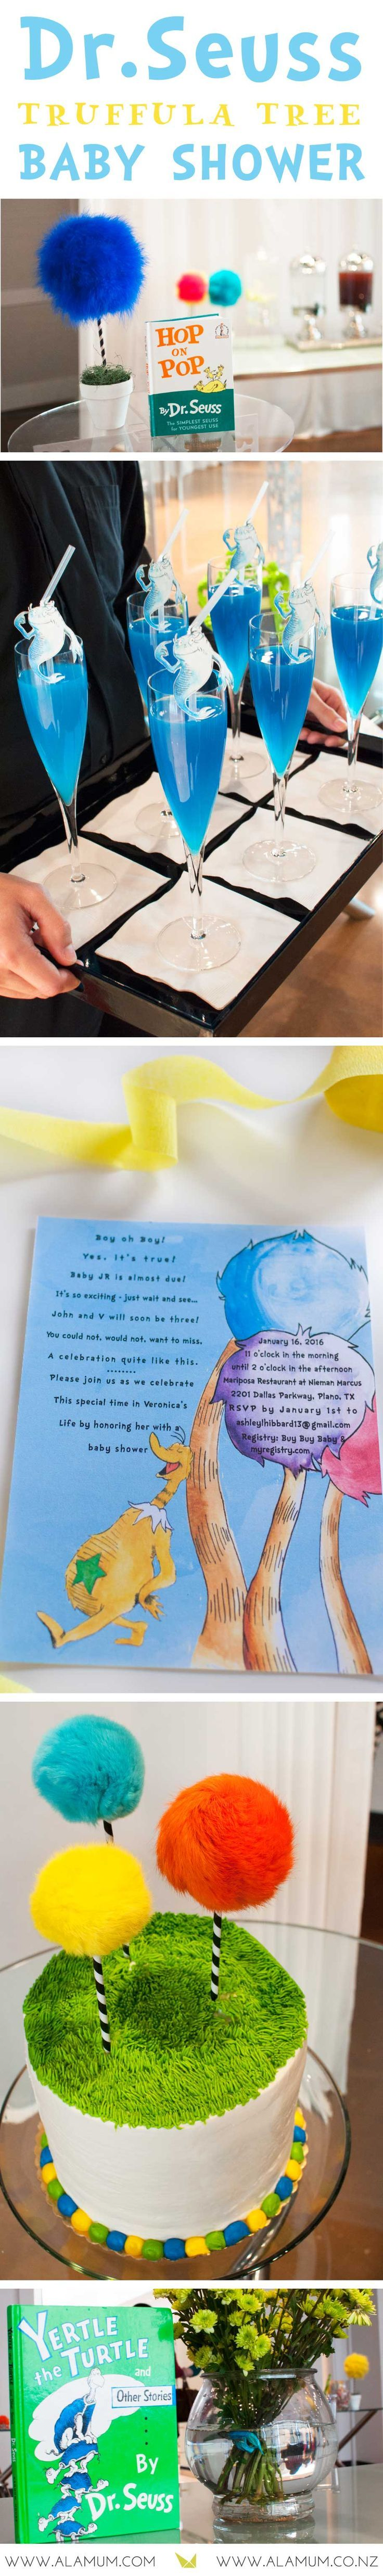 Party Inspiration: Dr. Seuss Baby Shower